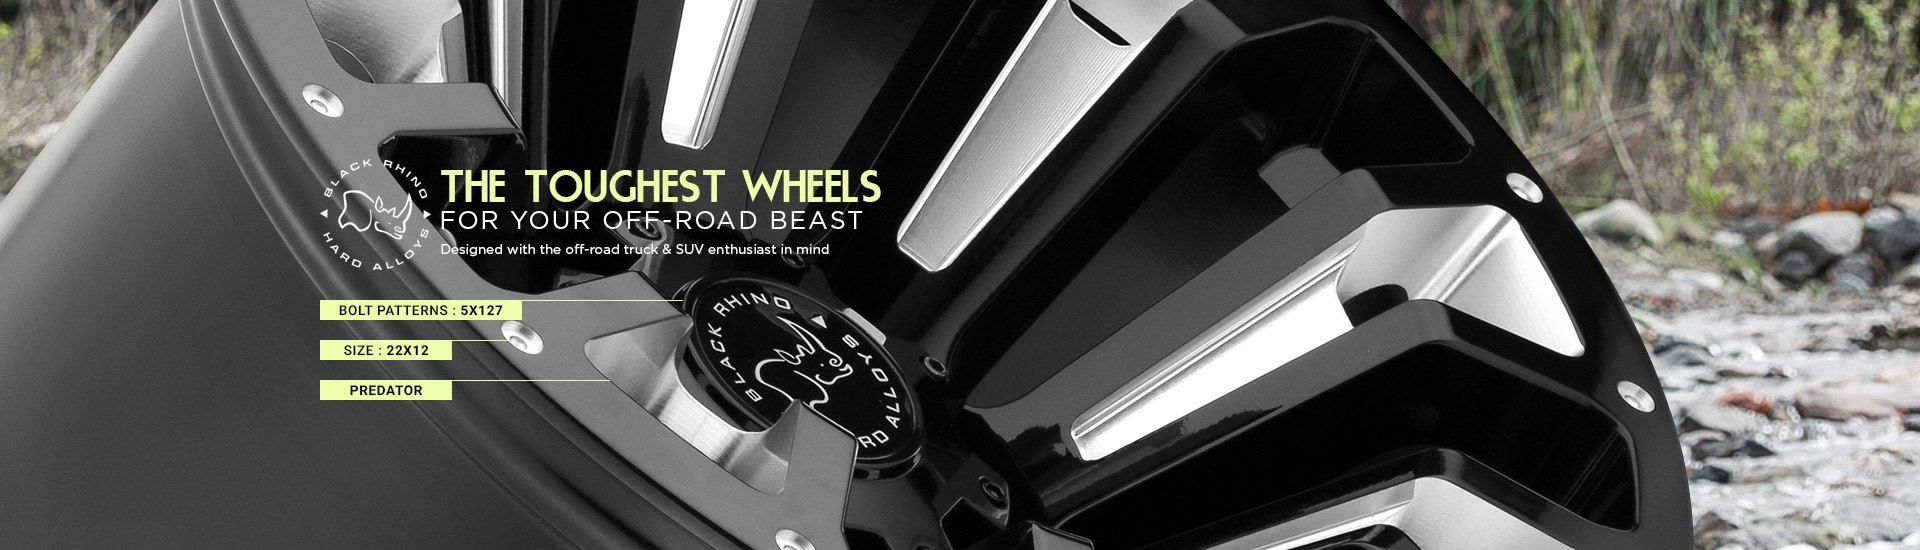 Picking custom replacement wheels for your vehicle